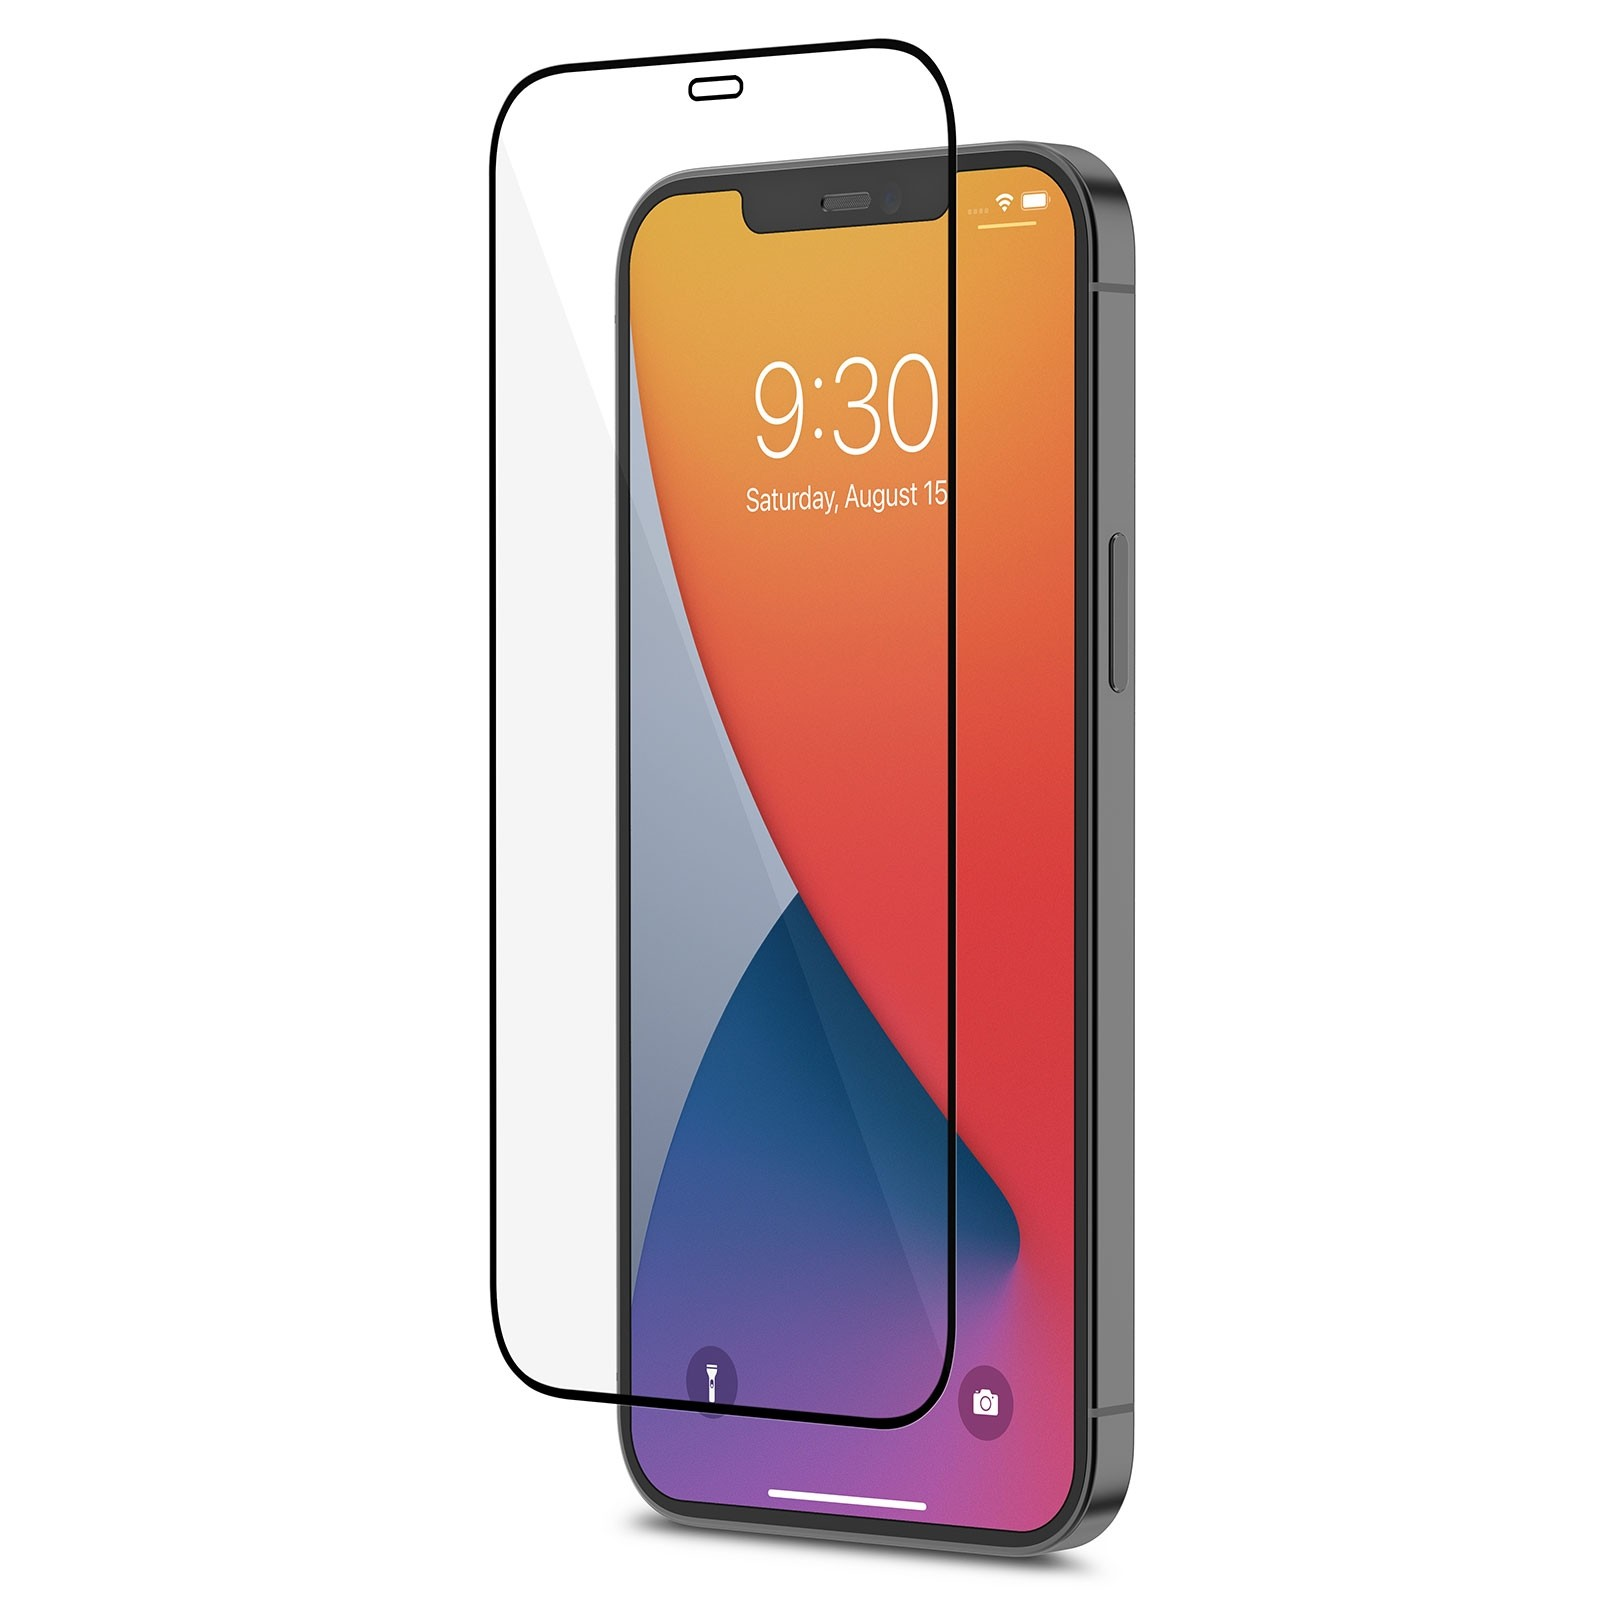 Moshi AirFoil Pro for iPhone 12 Pro Max - Black , 99MO044913